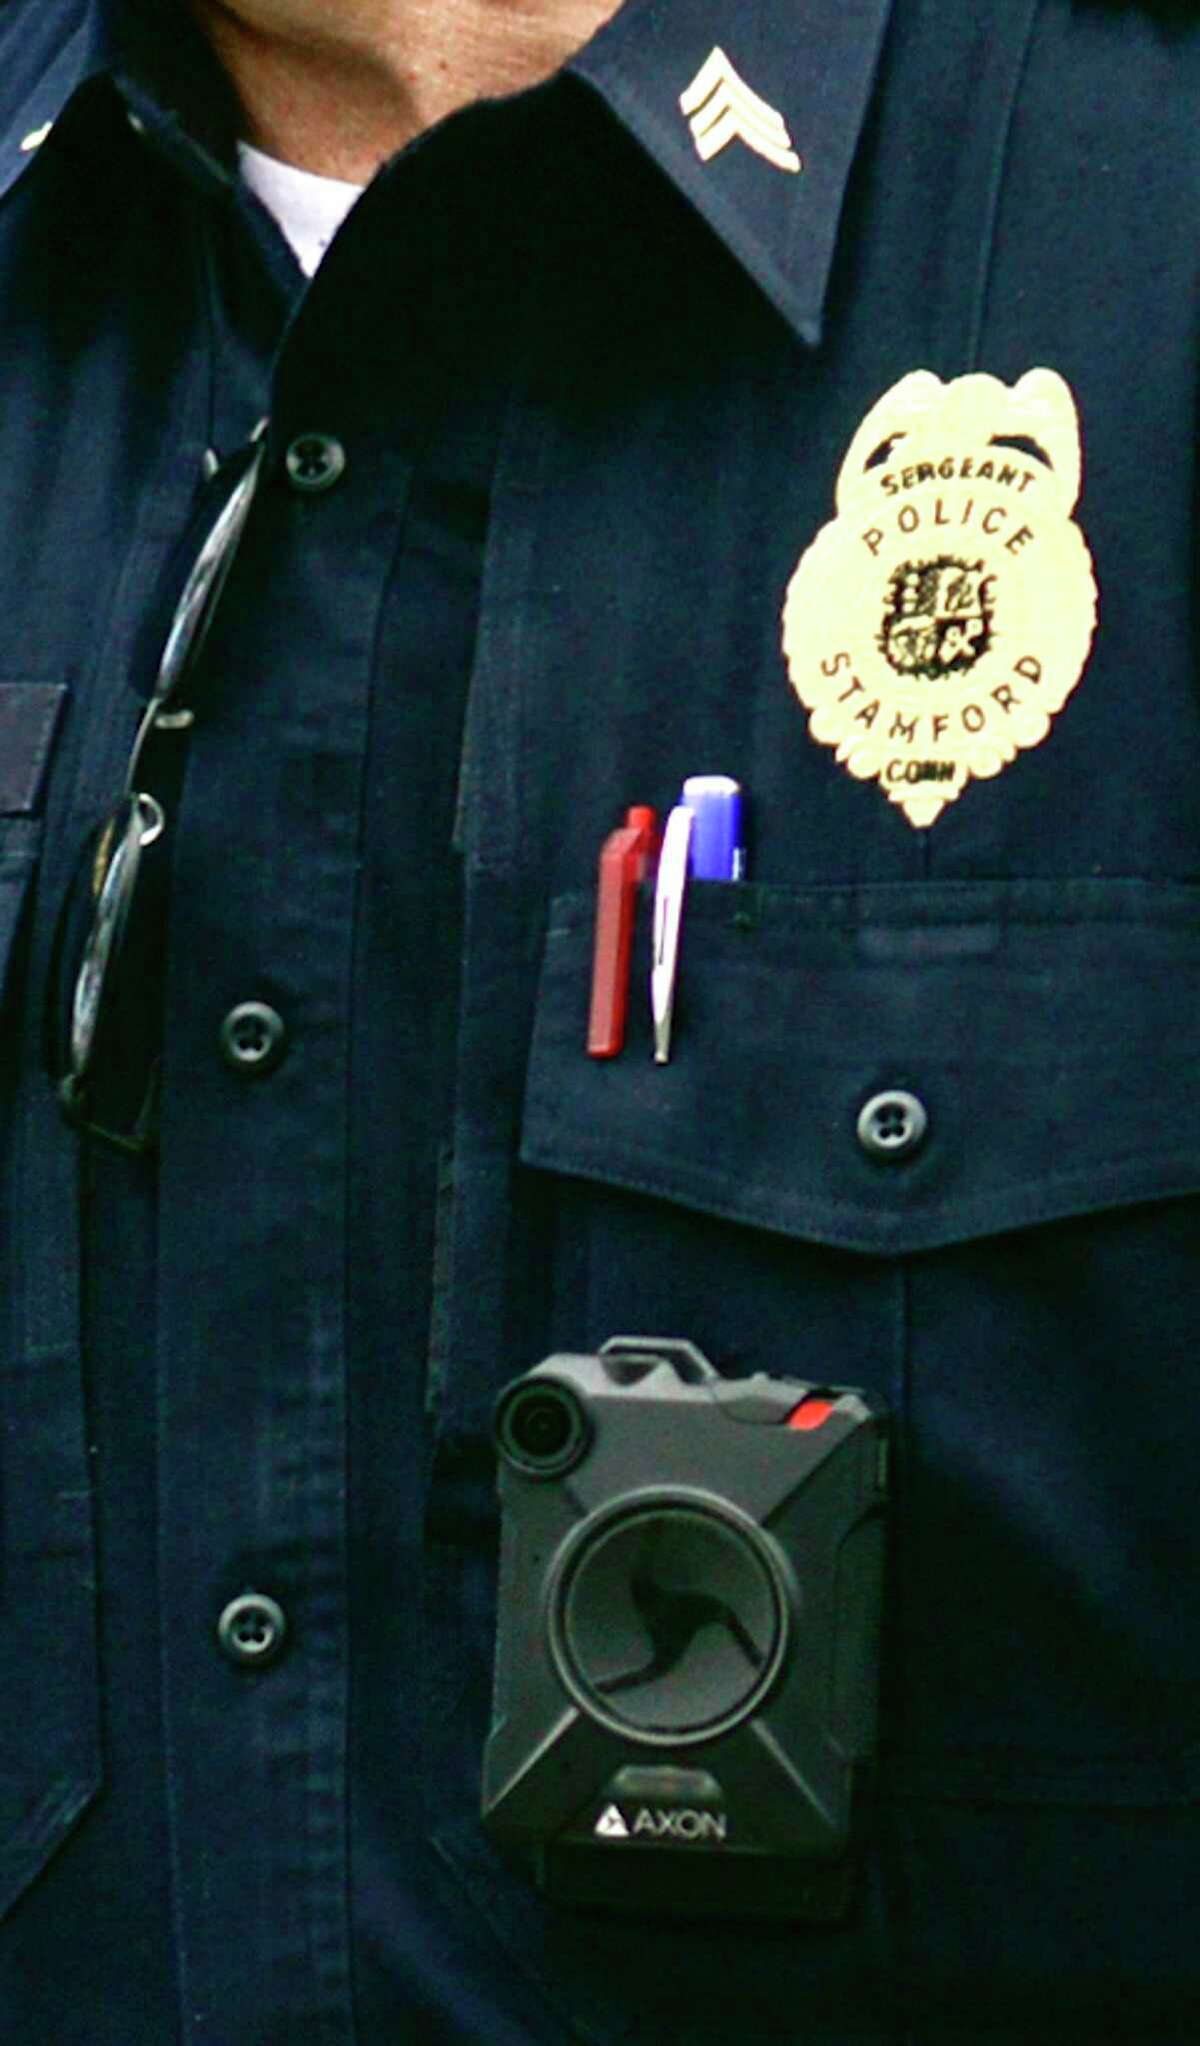 A Stamford Police Department sergeant wears a body camera.